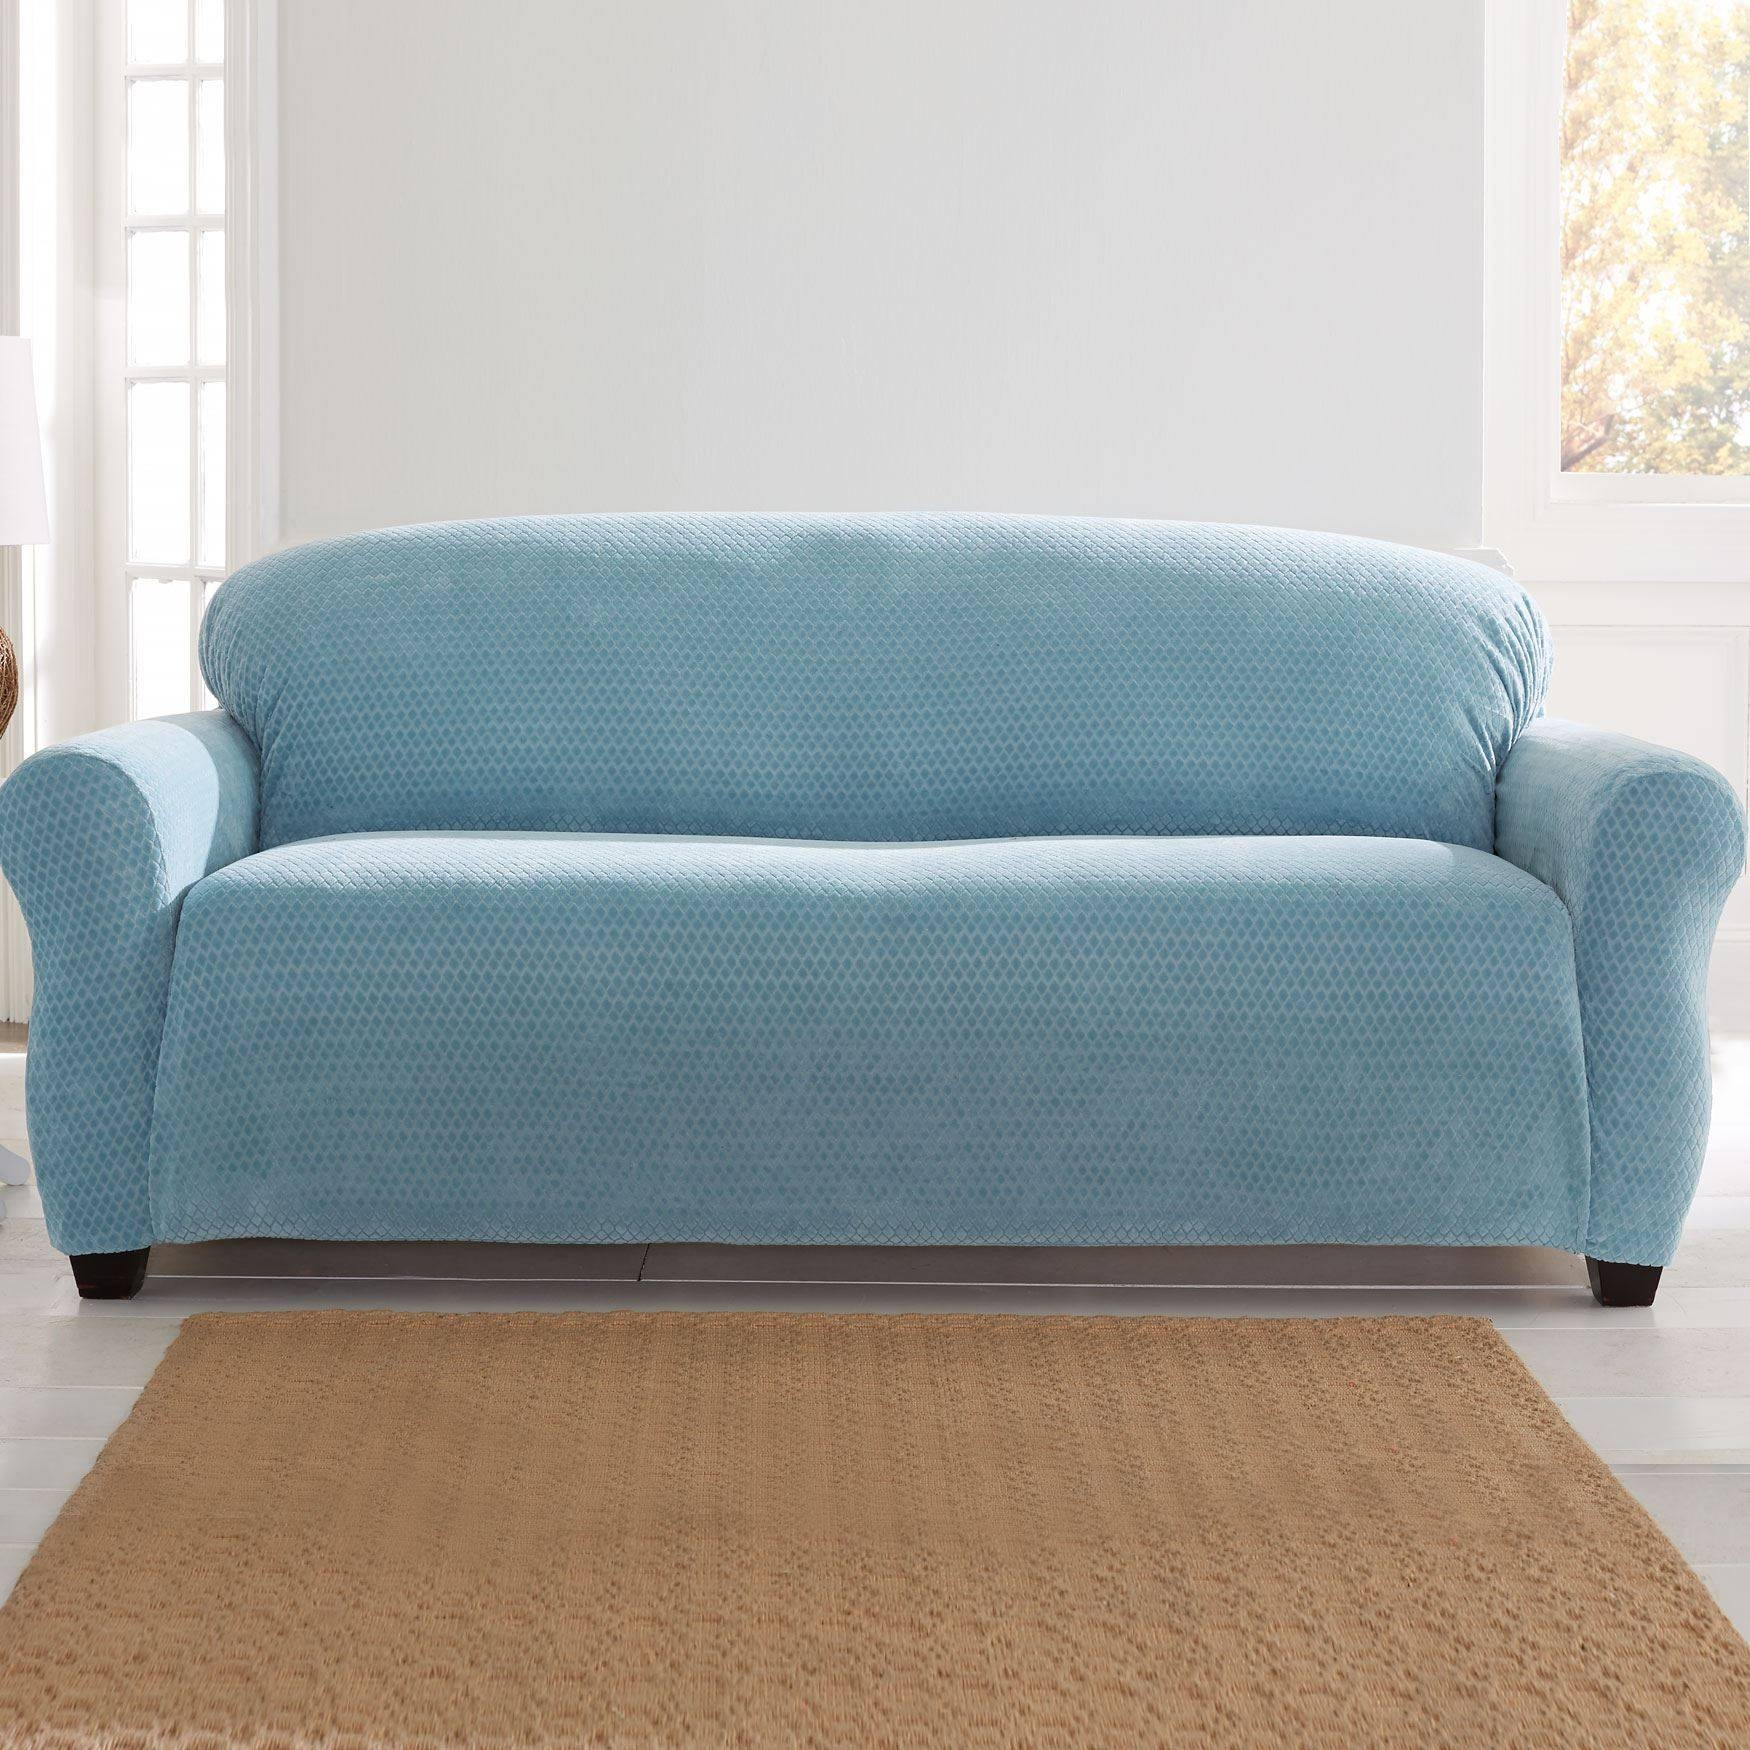 Furniture: Cool Stretch Sofa Covers To Protect And Renew Your Sofa for Turquoise Sofa Covers (Image 7 of 30)